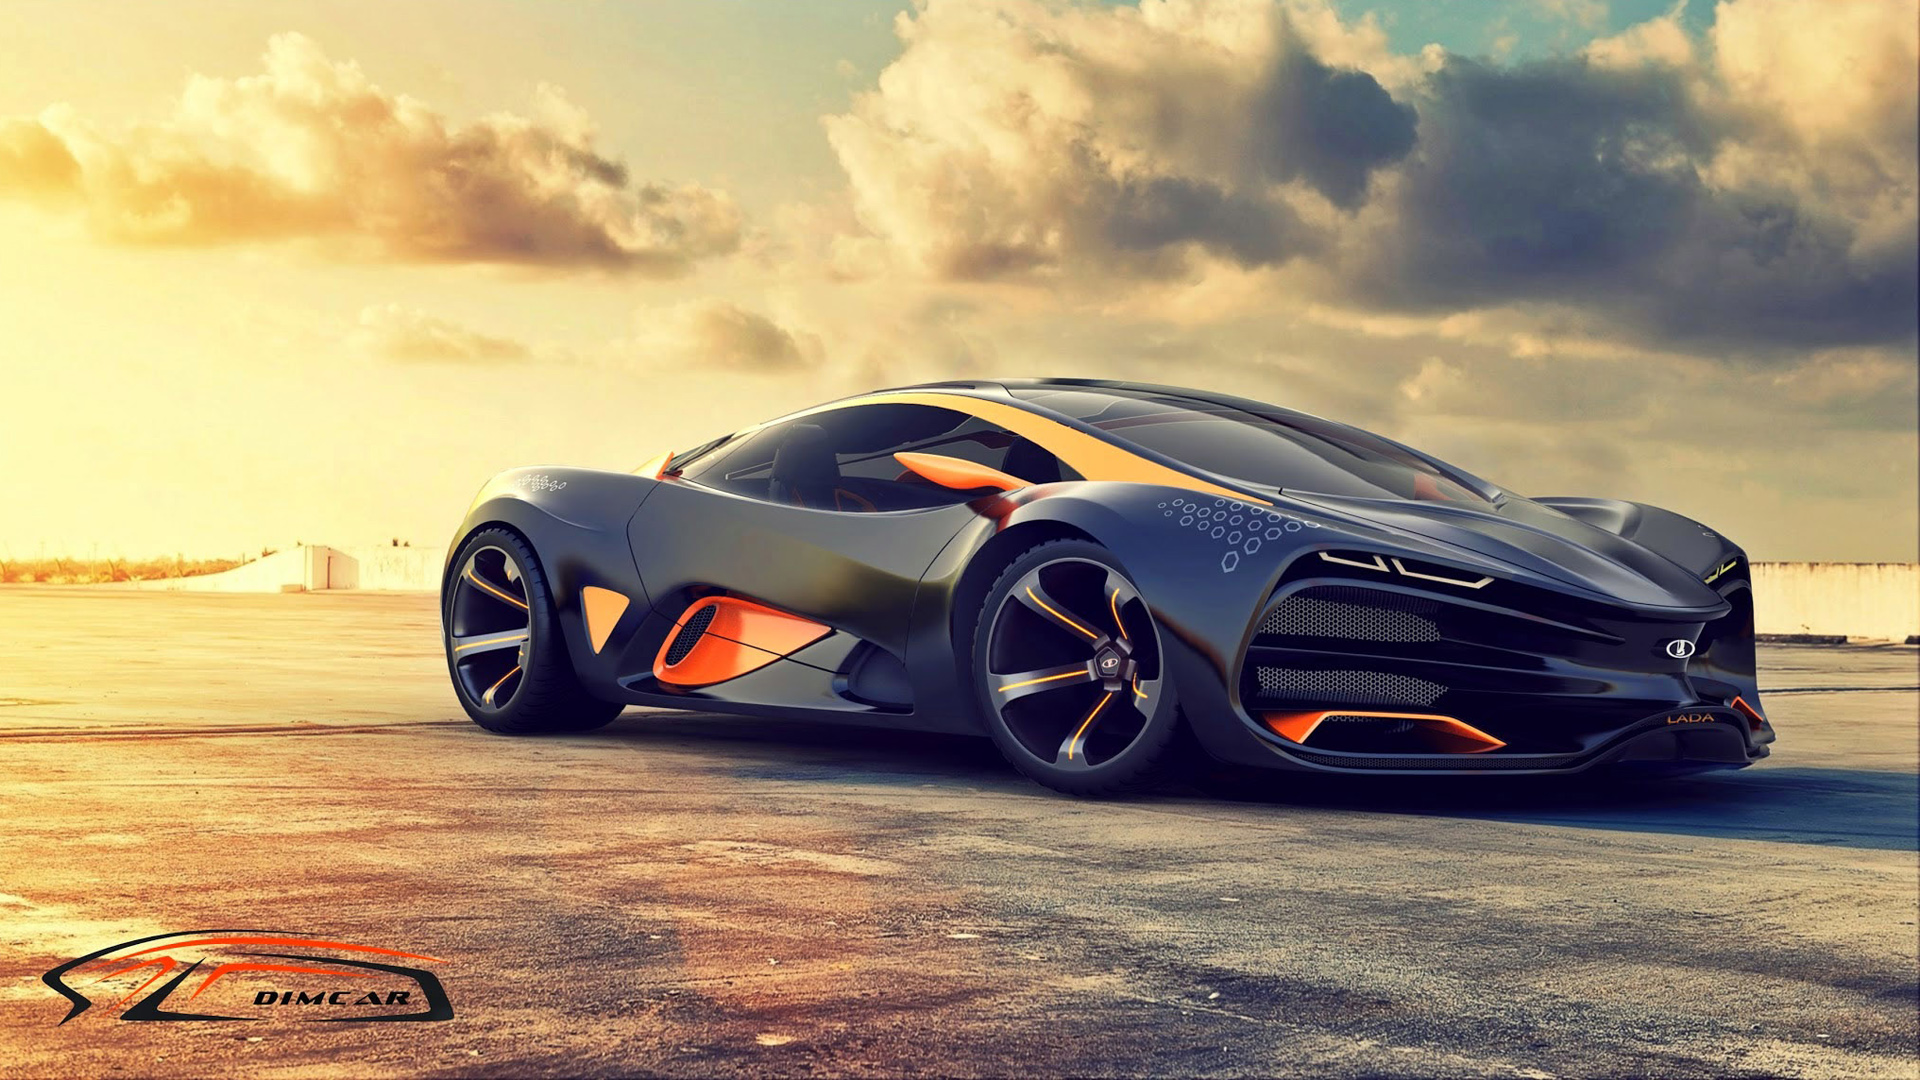 2015 lada raven supercar concept 2 wallpaper hd car wallpapers id 5166. Black Bedroom Furniture Sets. Home Design Ideas